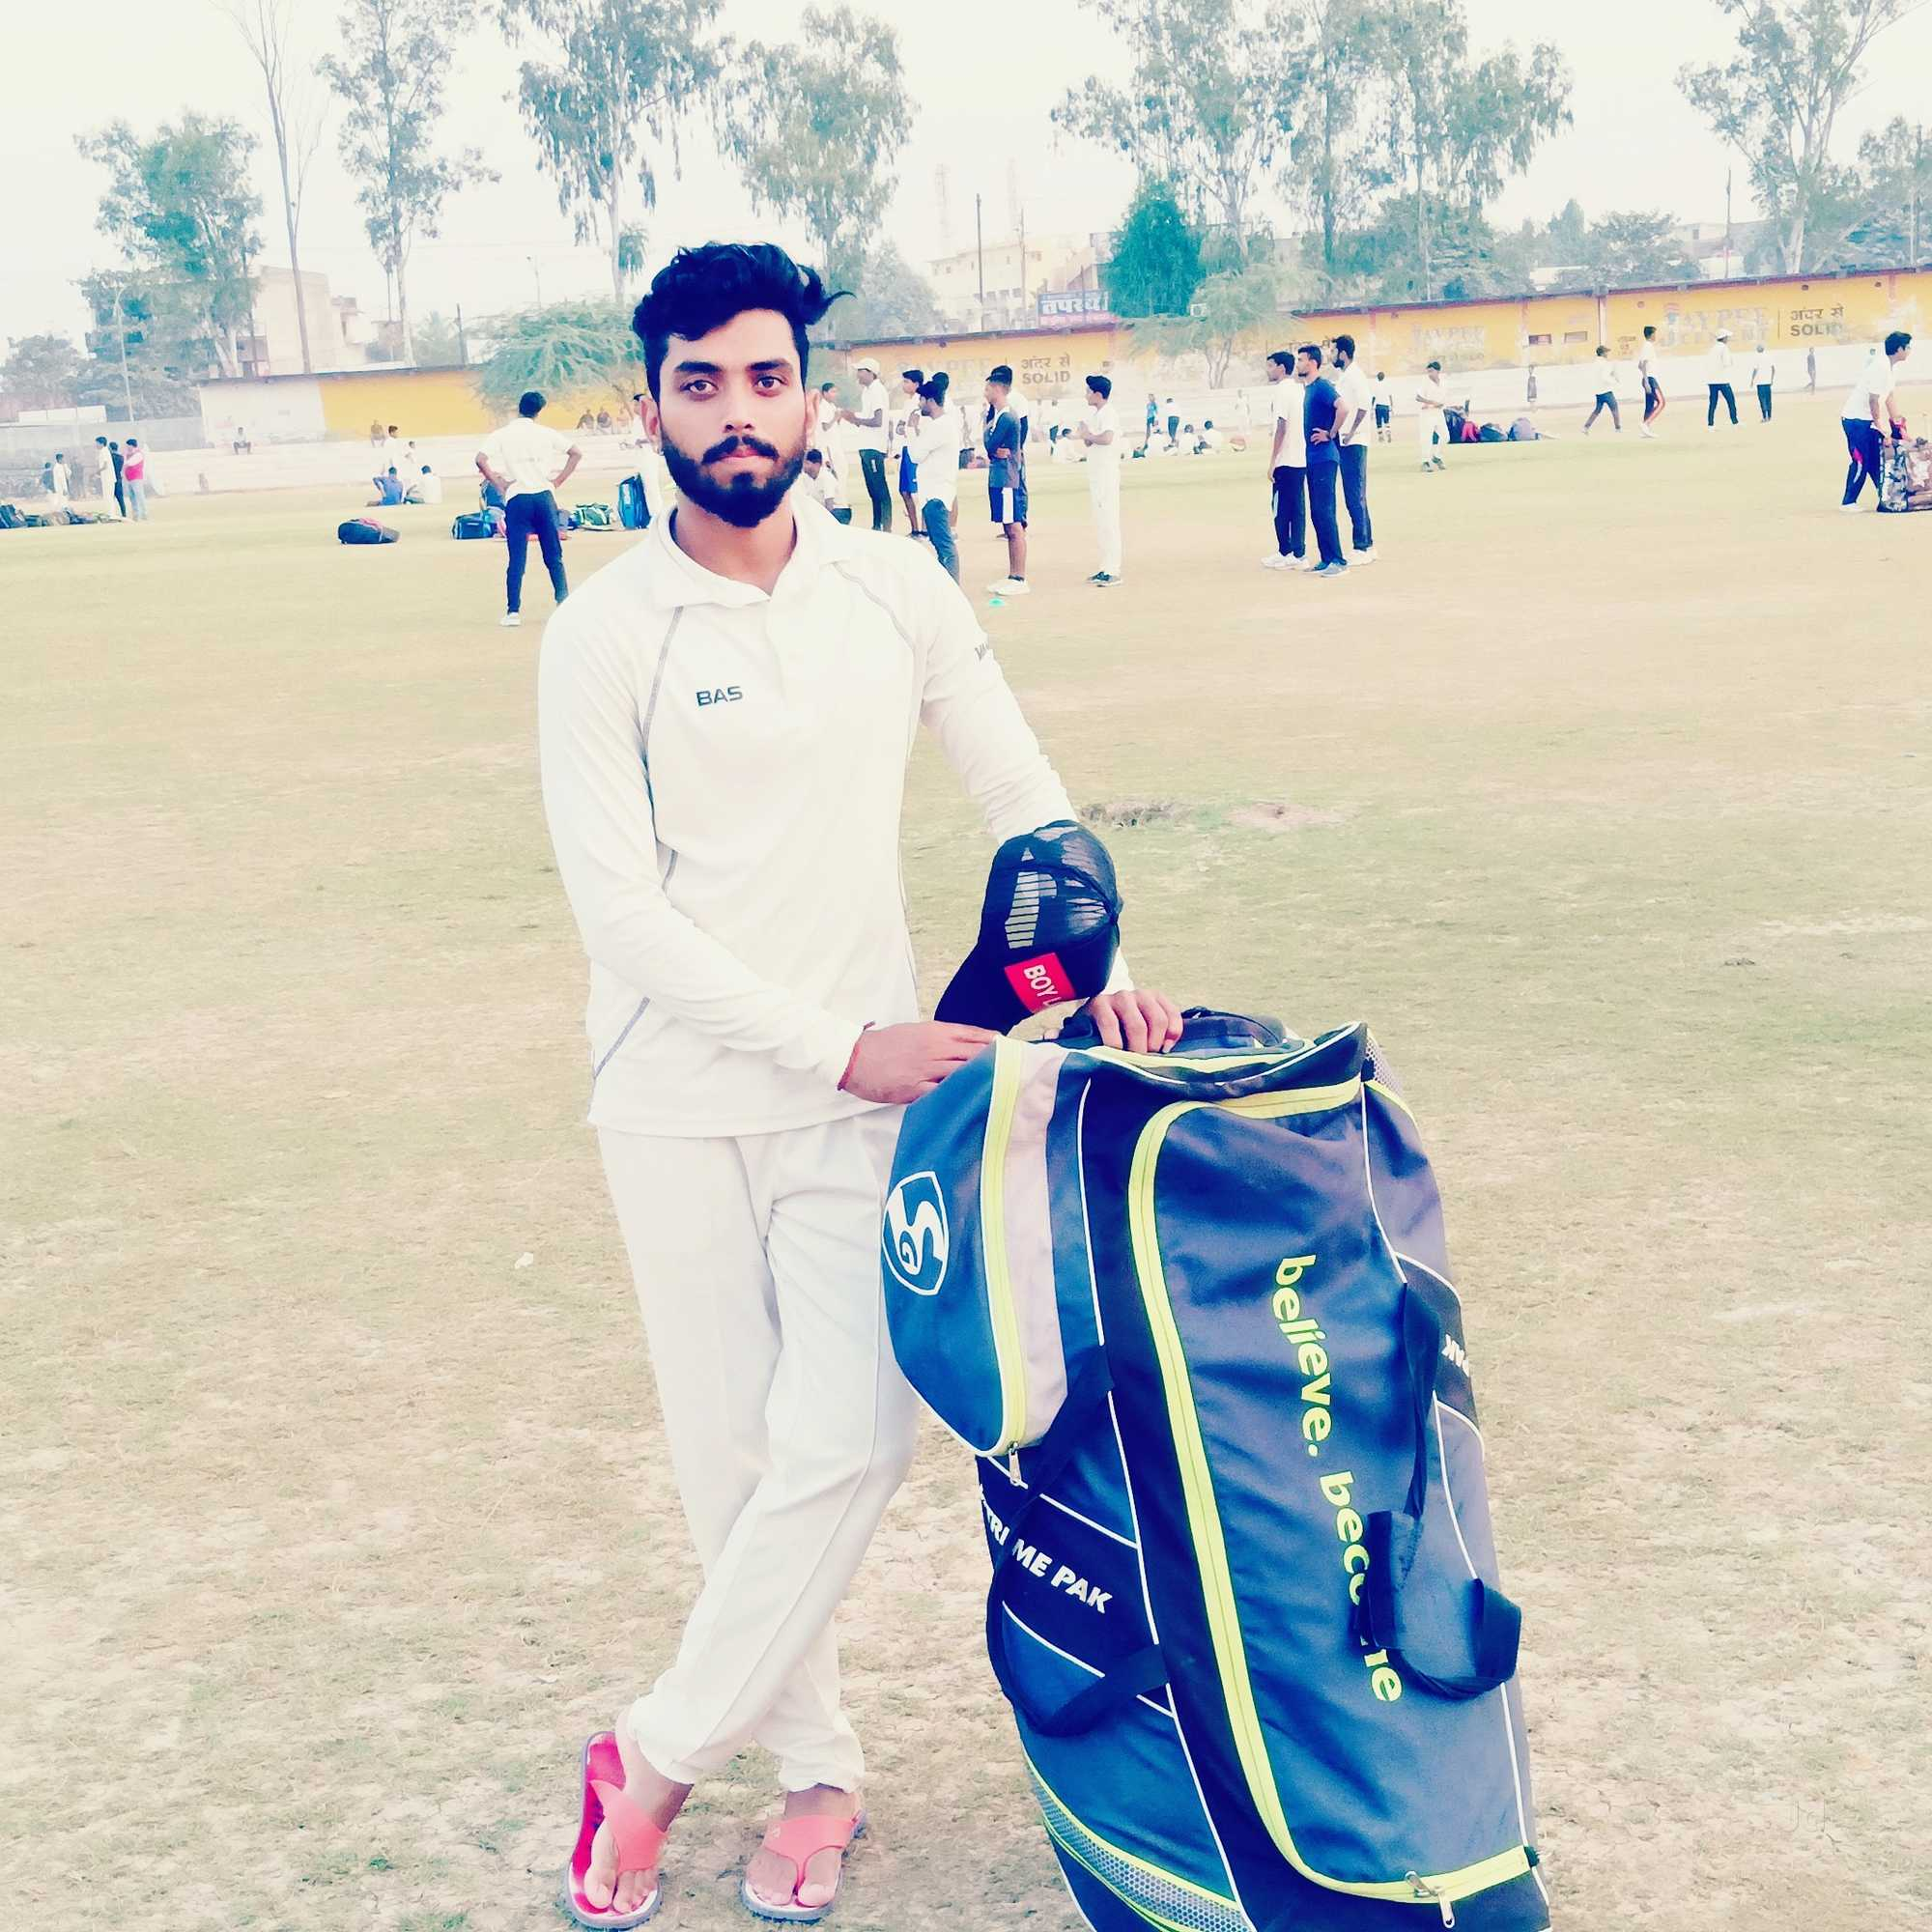 Top Cricket Clubs in Shahdol - Justdial